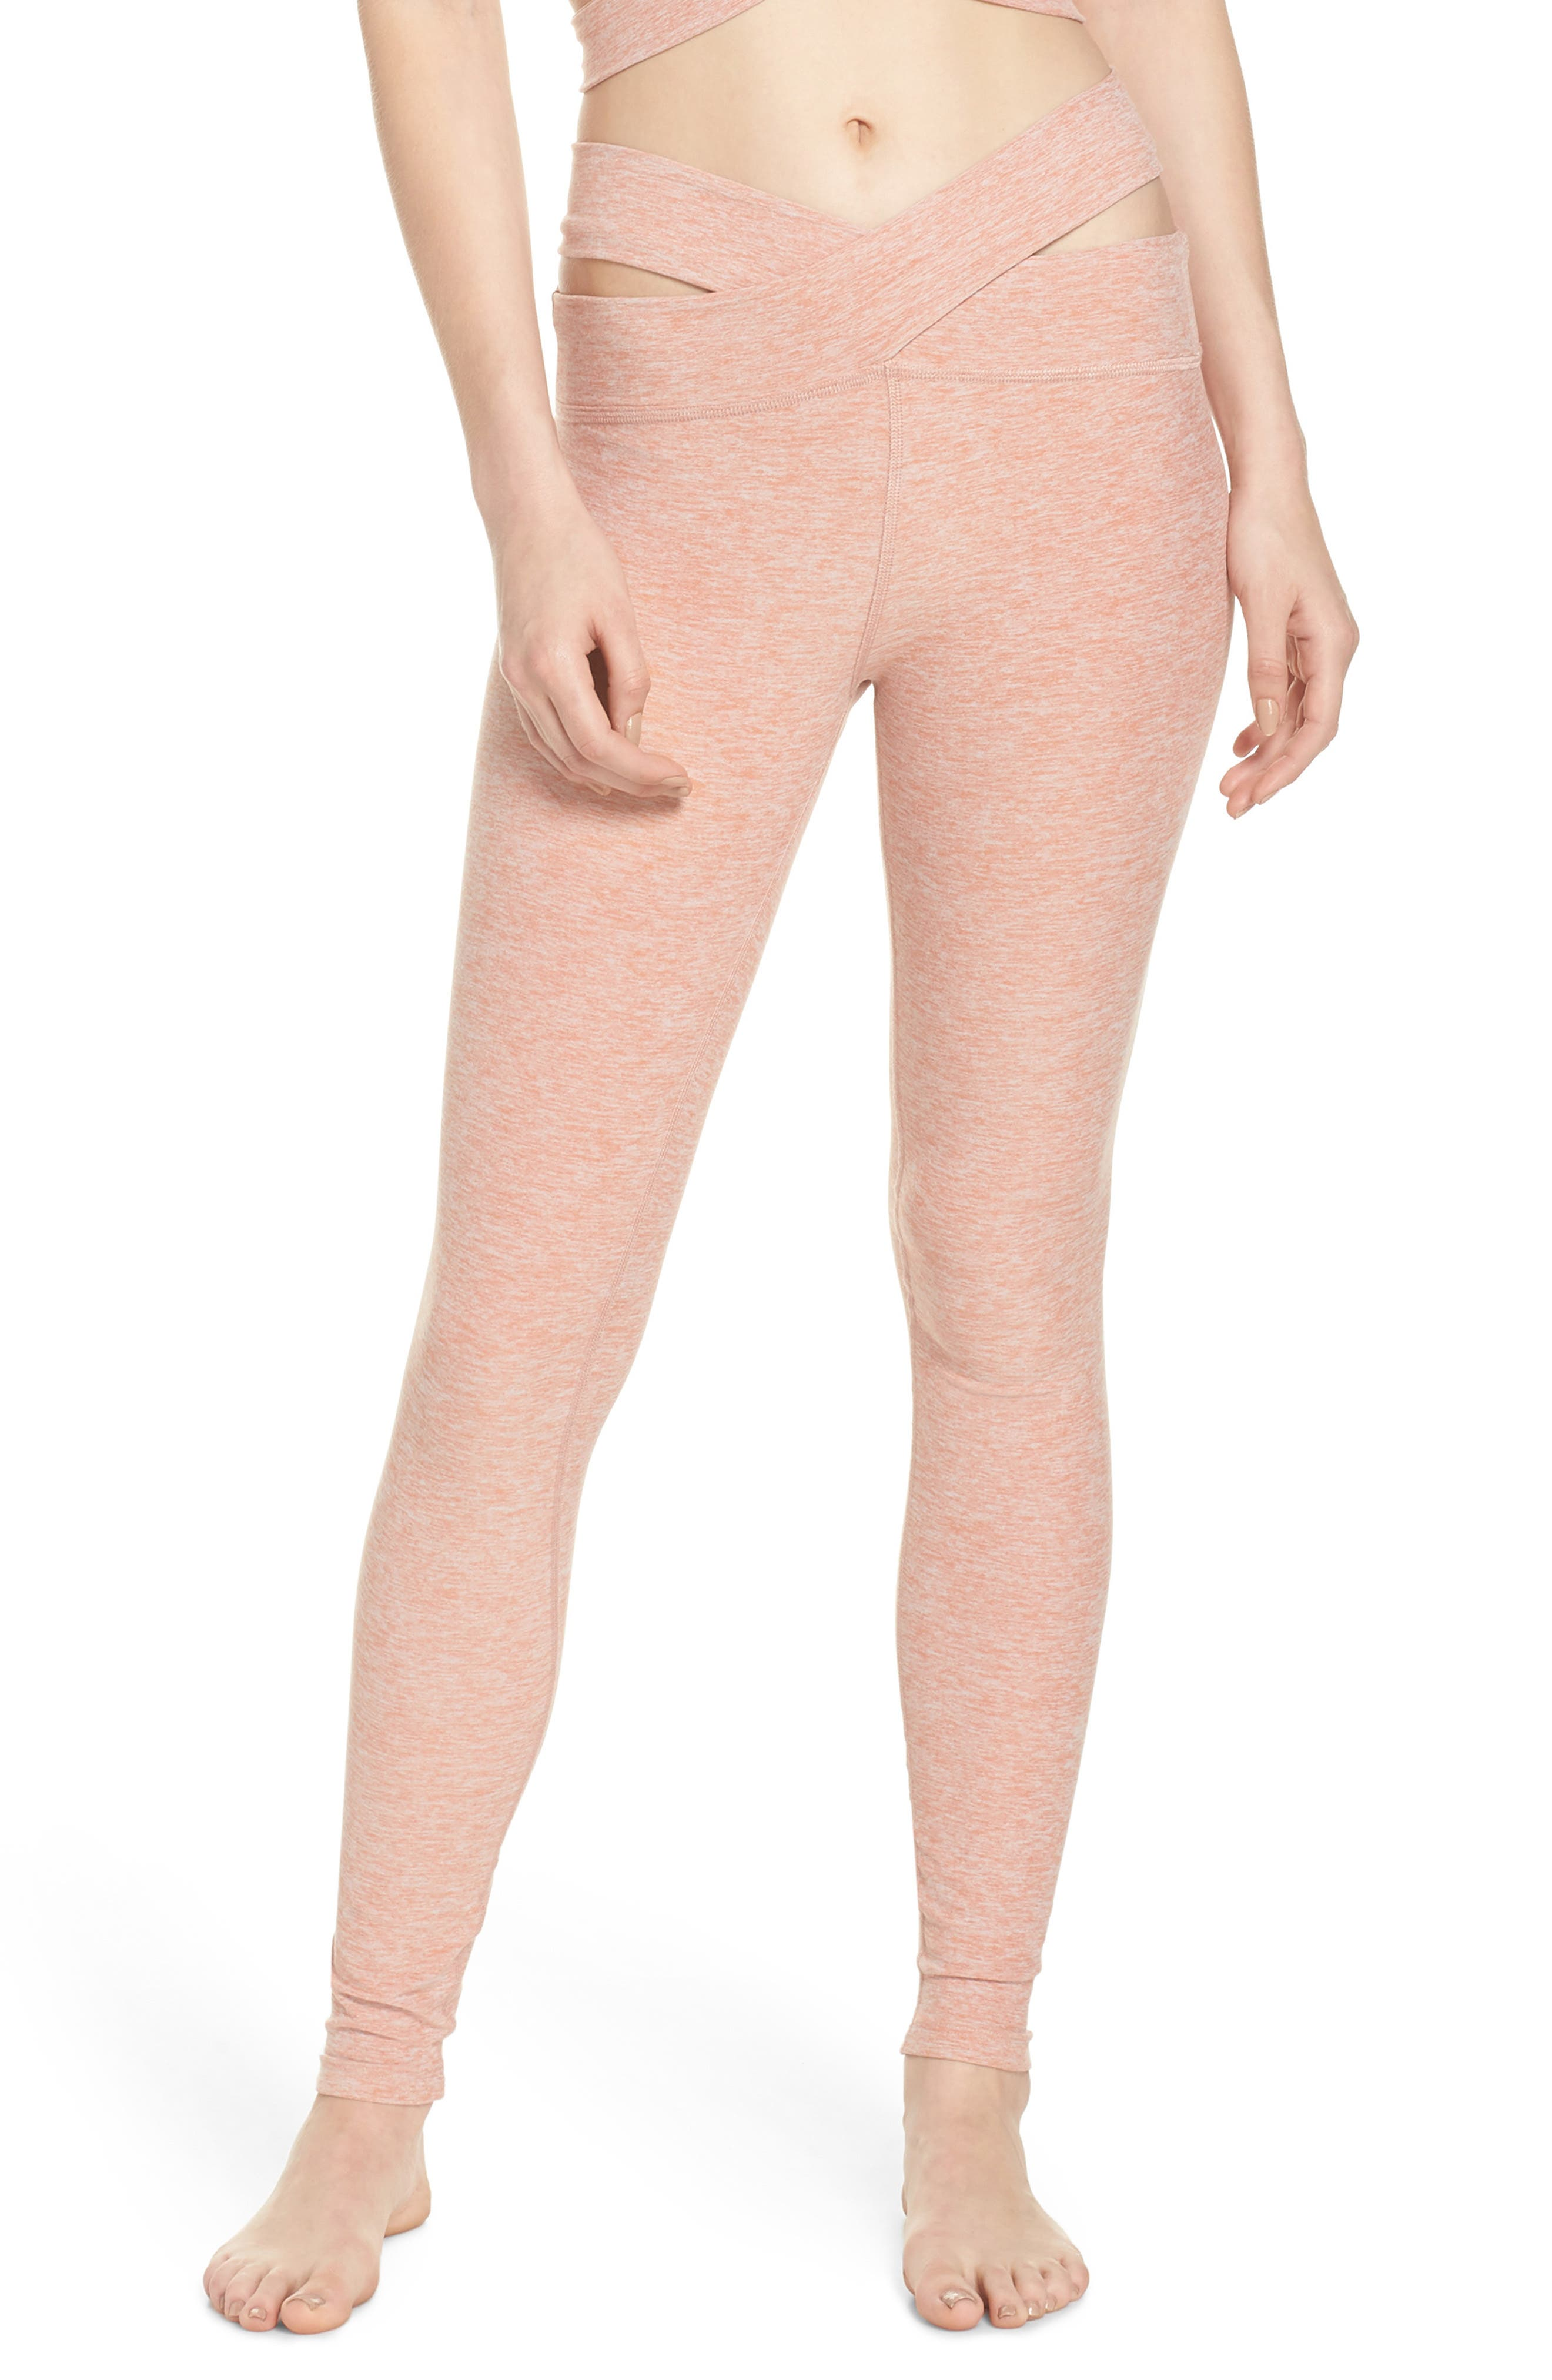 East Bound Space Dye Leggings,                         Main,                         color, Rainwash- Pink Shell